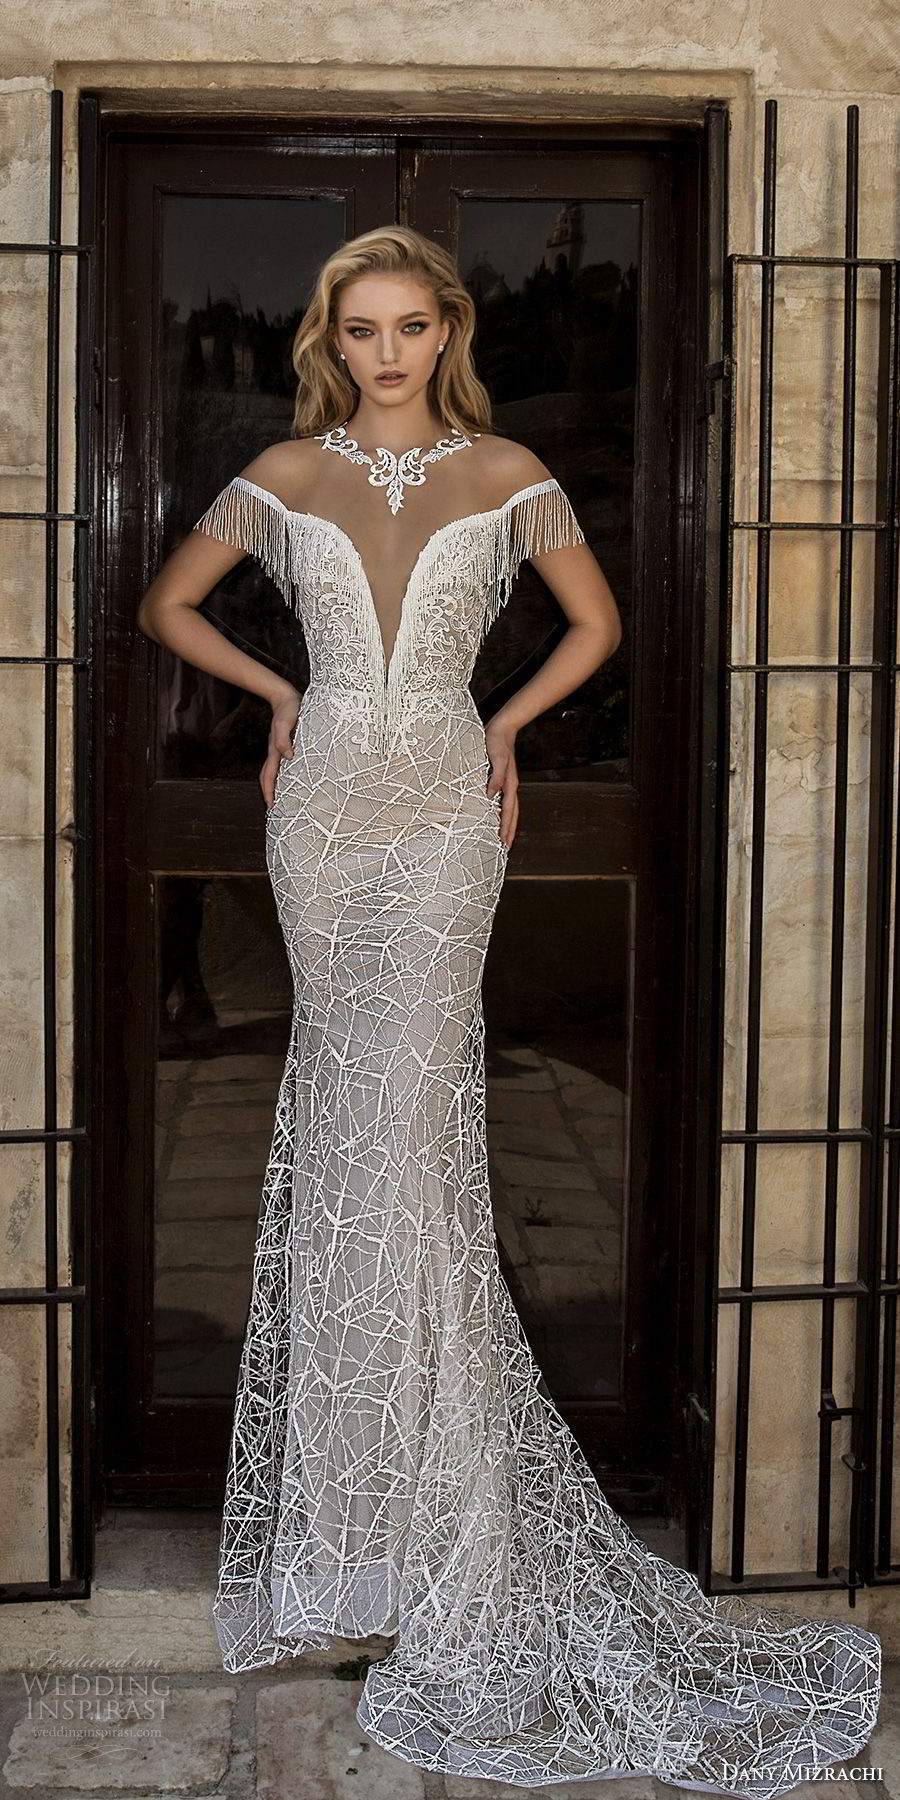 dany mizrachi spring 2018 bridal off the shoulder deep plunging v neck full embellishment elegant fit and flare wedding dress open v back chapel train (24) mv